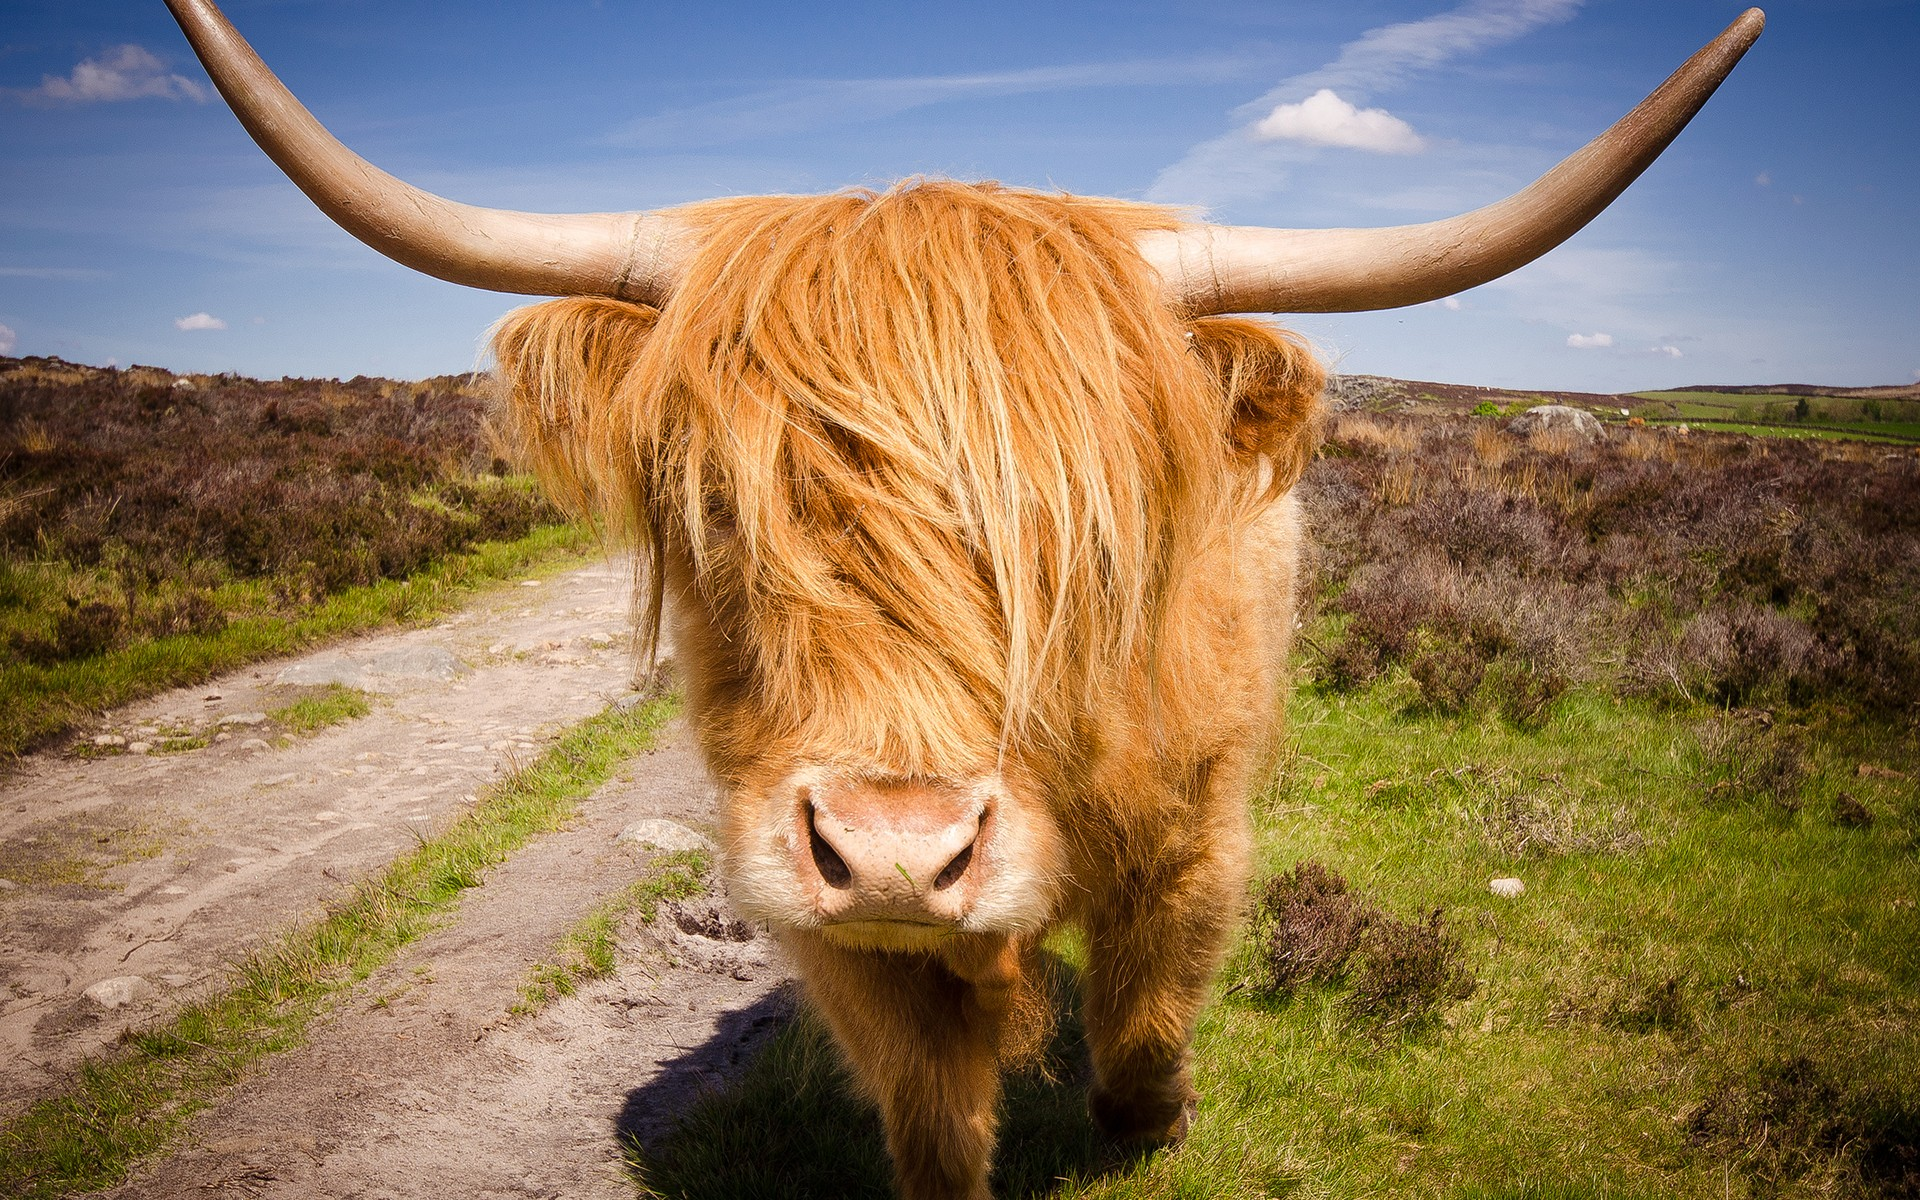 Highland Cattle Hd Wallpaper Background Image 1920x1200 Id 414776 Wallpaper Abyss